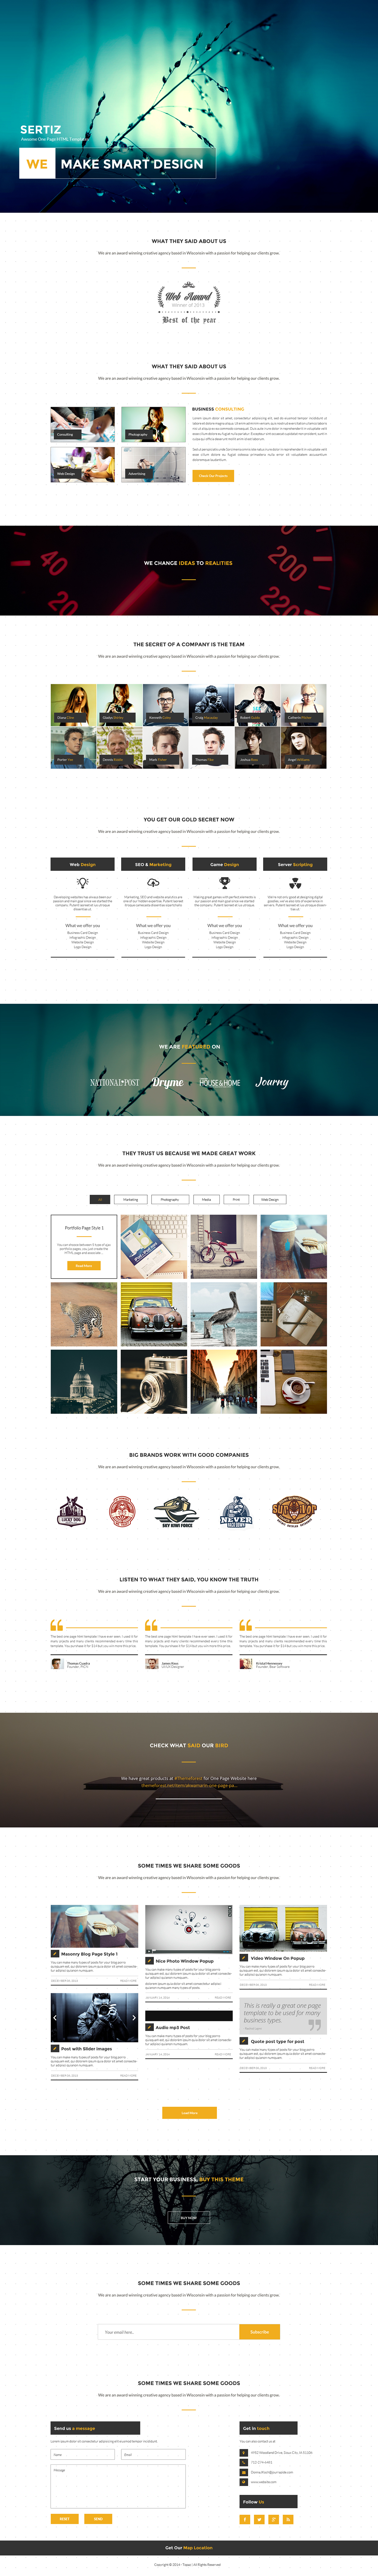 Sertin – Free Bootstrap HTML/CSS Template Onepage + PSD | uihive ...